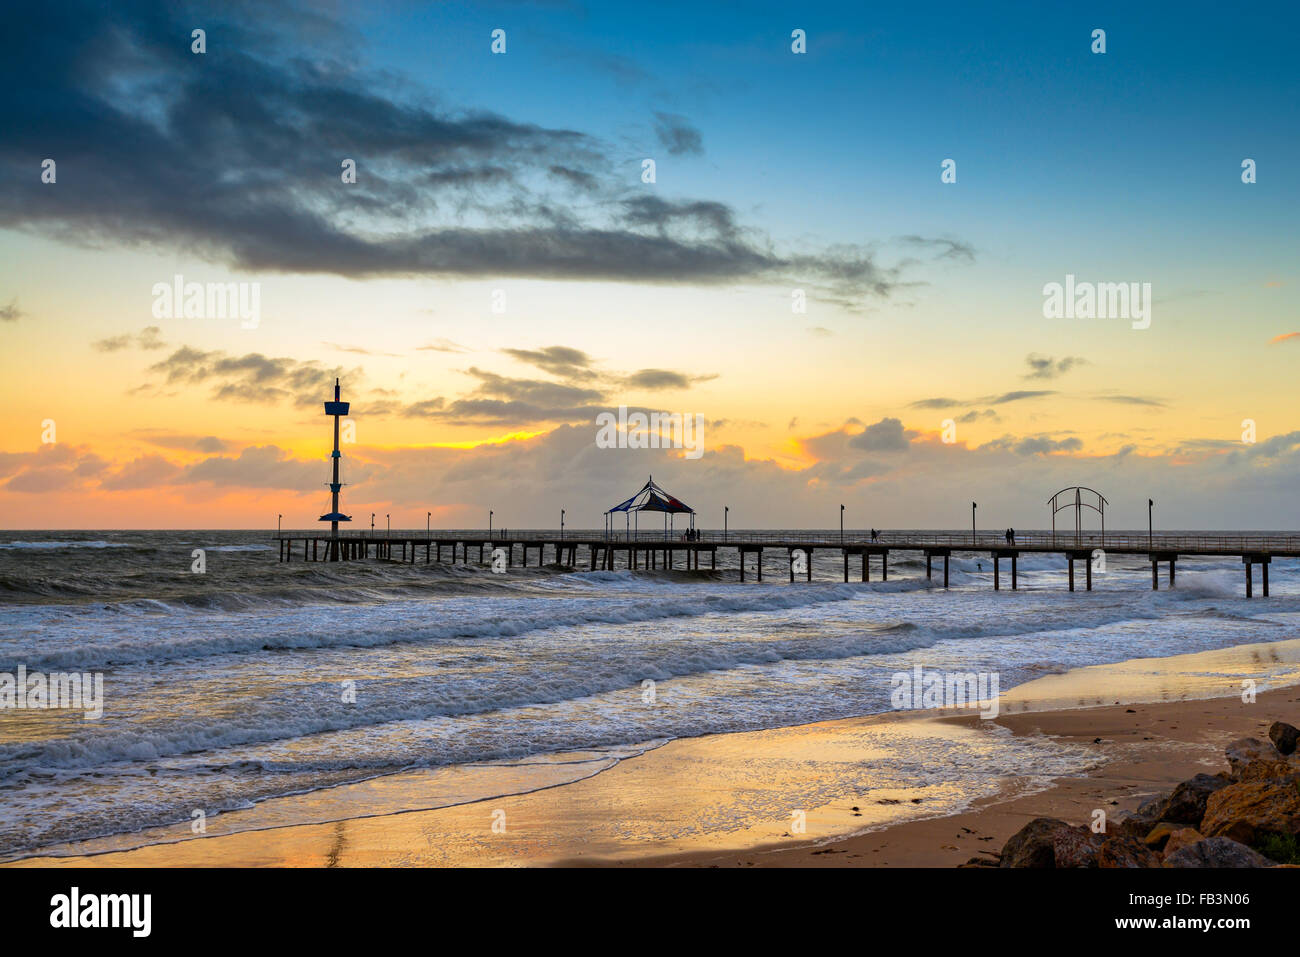 Surfer on Brighton Jetty at sunset on a stormy weather, South Australia - Stock Image